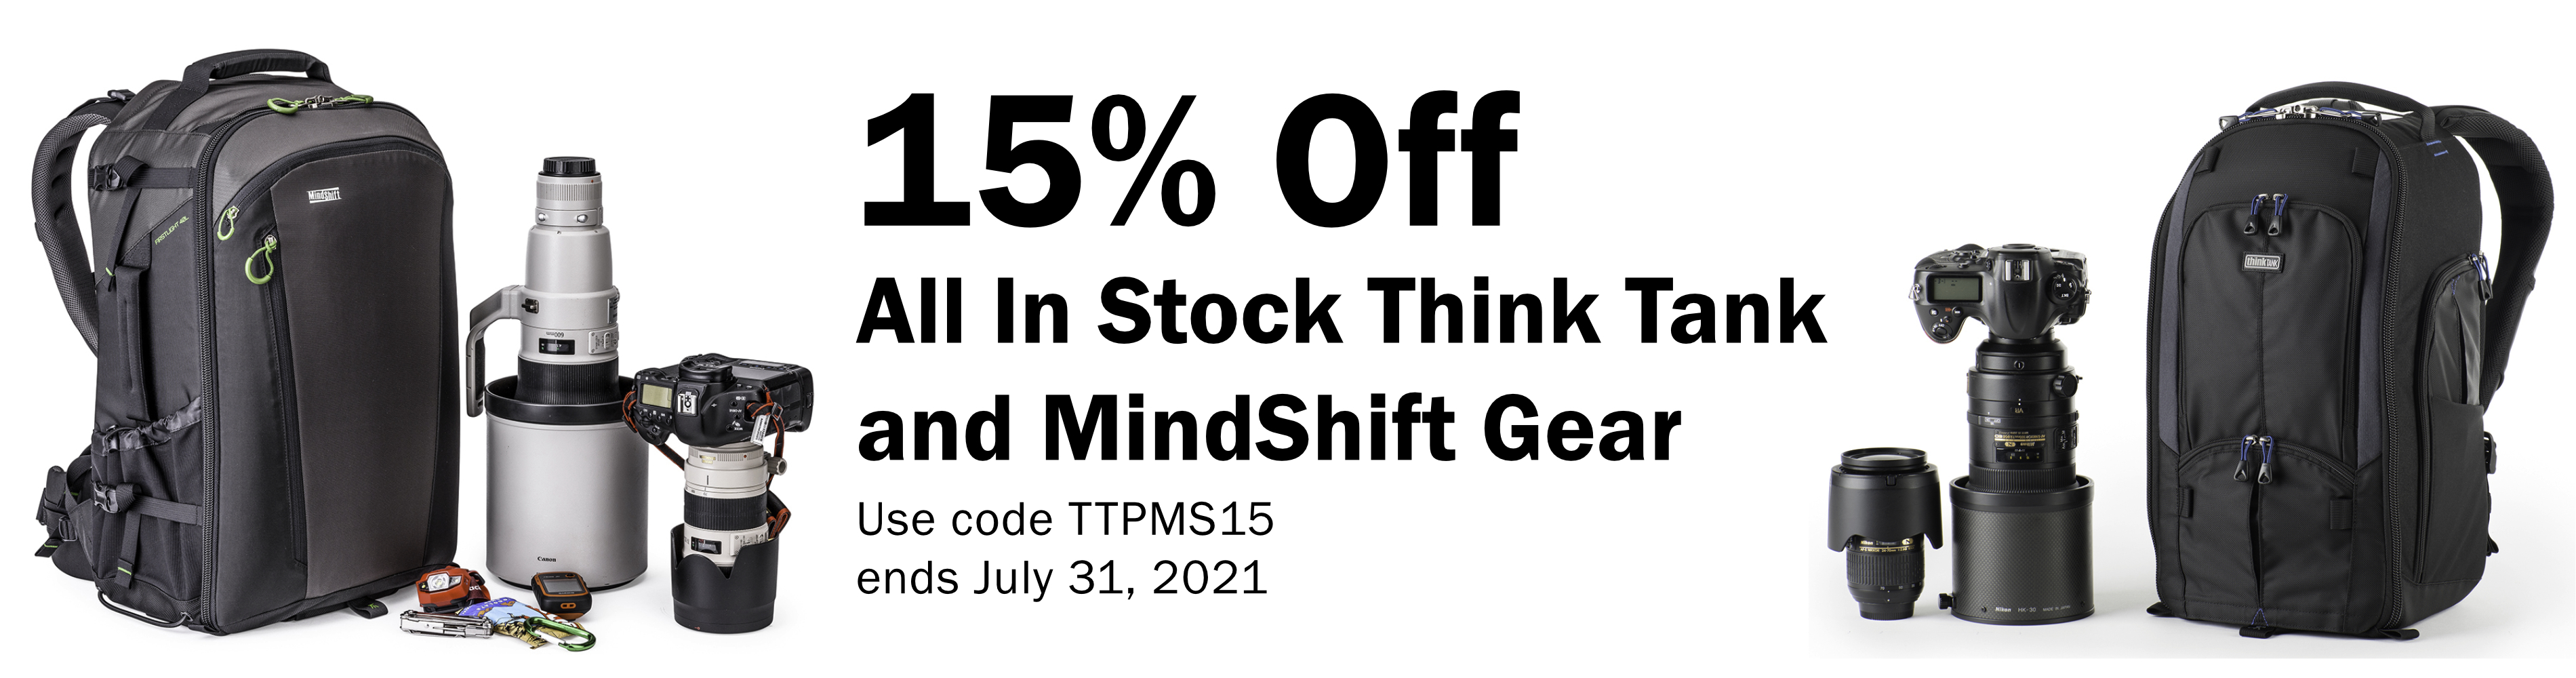 15% Off All In Stock Think Tank and MindShift Gear - Use code TTPMS15 through July 31, 2021